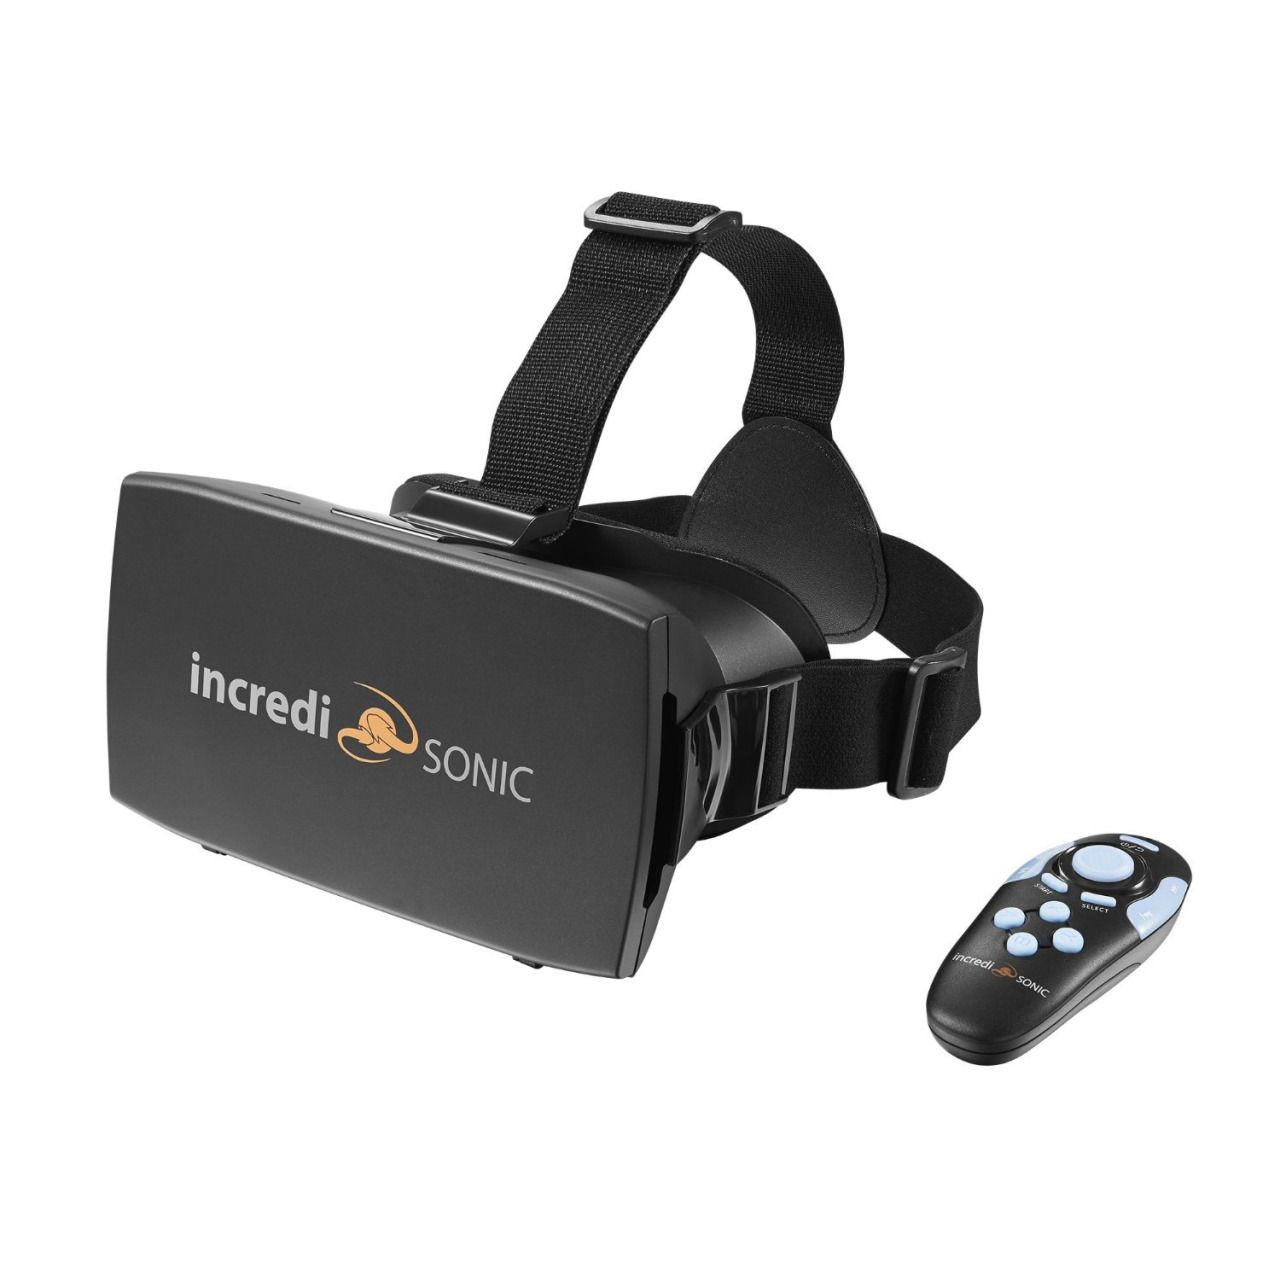 IncrediSonic VUE Series VR Glasses Virtual Reality Headset & Bluetooth Gaming Controller ★ Buy This Stuff ★• . #gadgets #gosstudio #gift #giftideas ★ We recommend Gift Shop: http://www.zazzle.com/vintagestylestudio ★